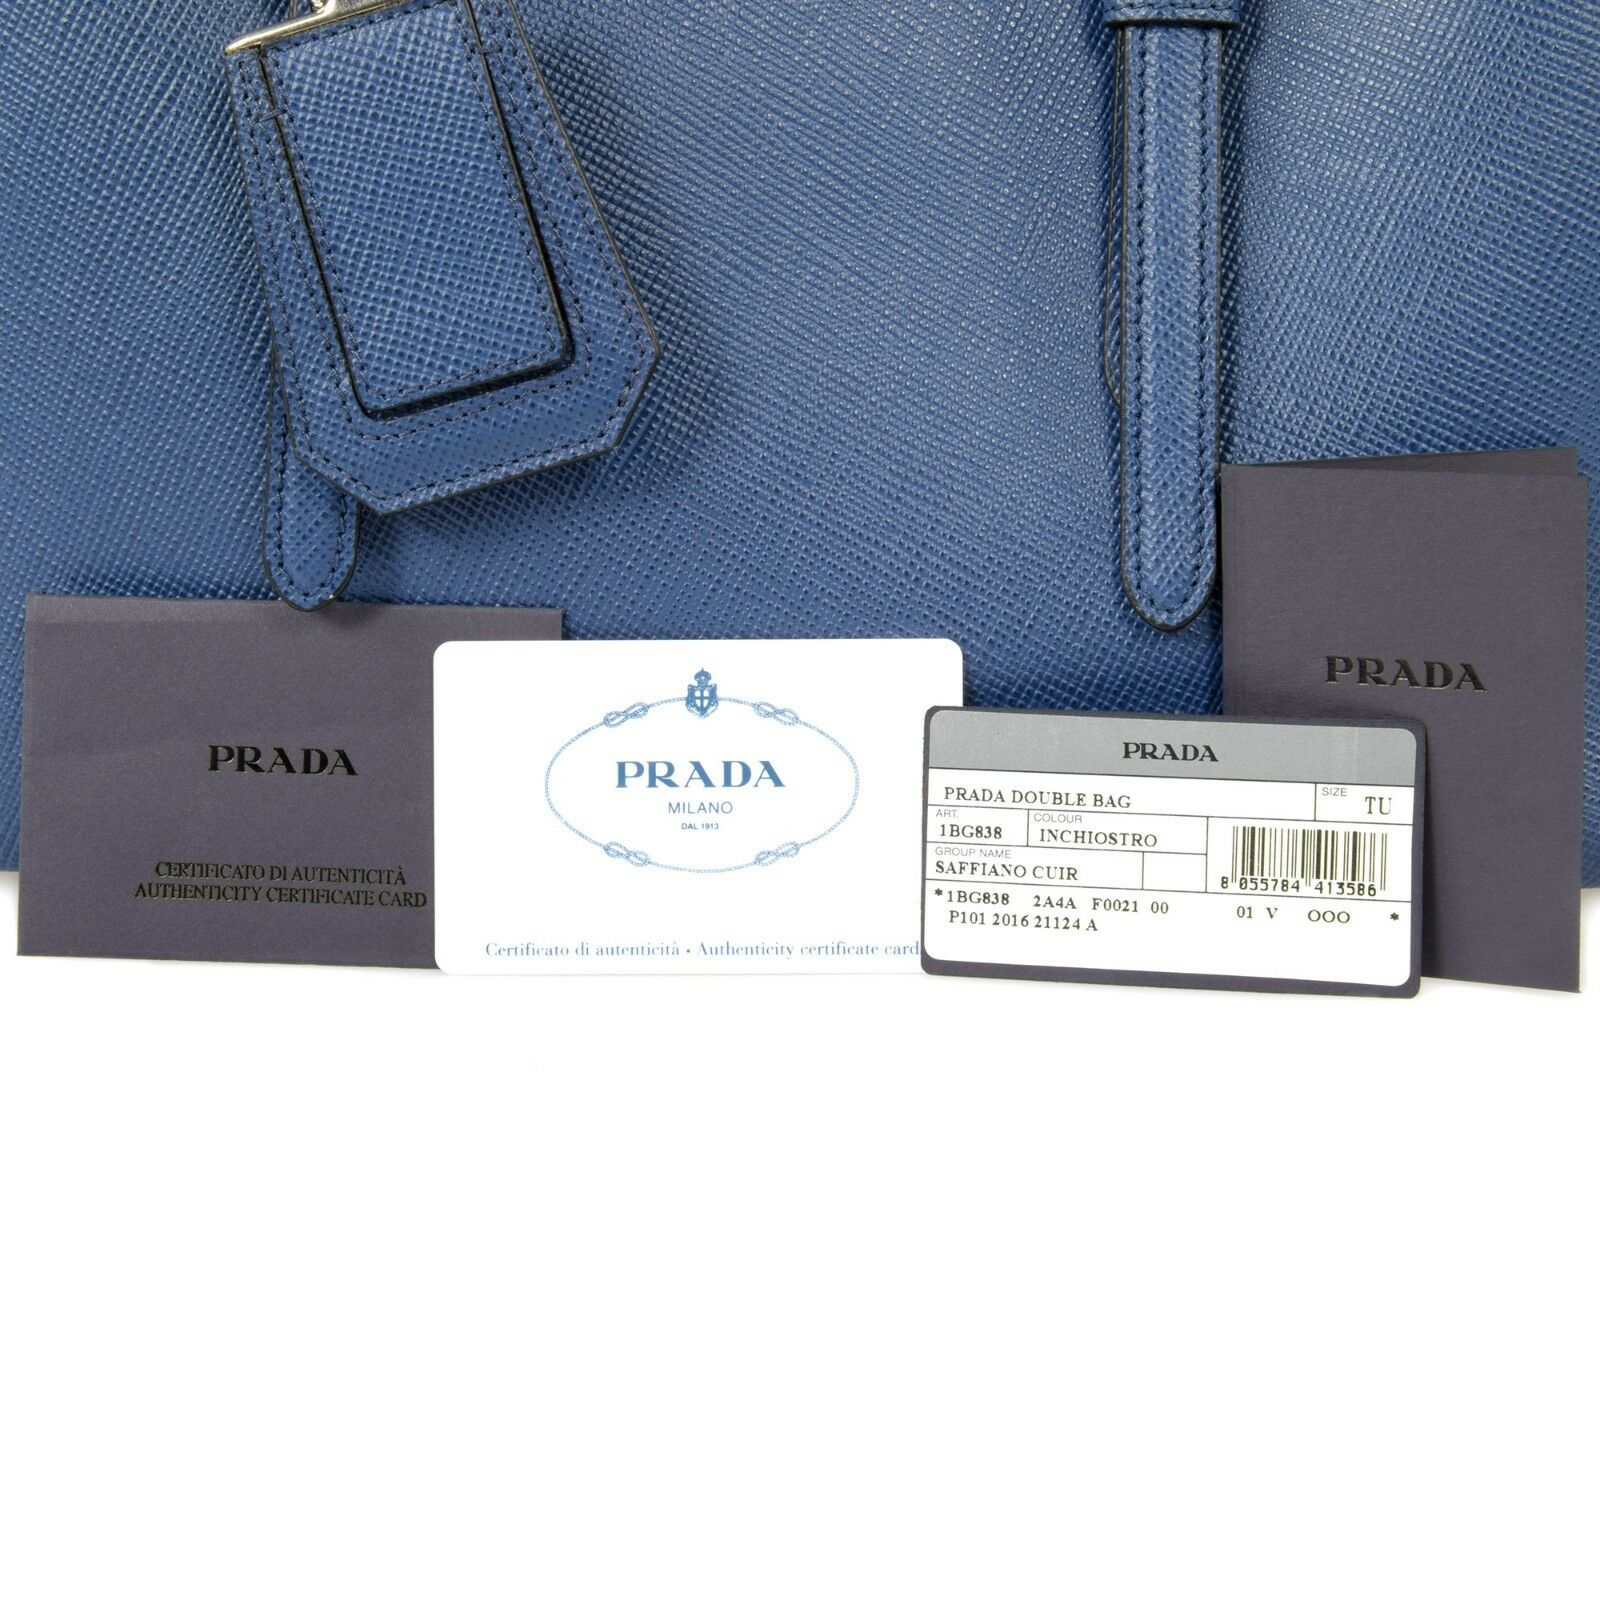 eb1235484ab3 PRADA Double Leather Bag Model 1bg838 F0021 Inchiostro/ink Blue for sale  online | eBay